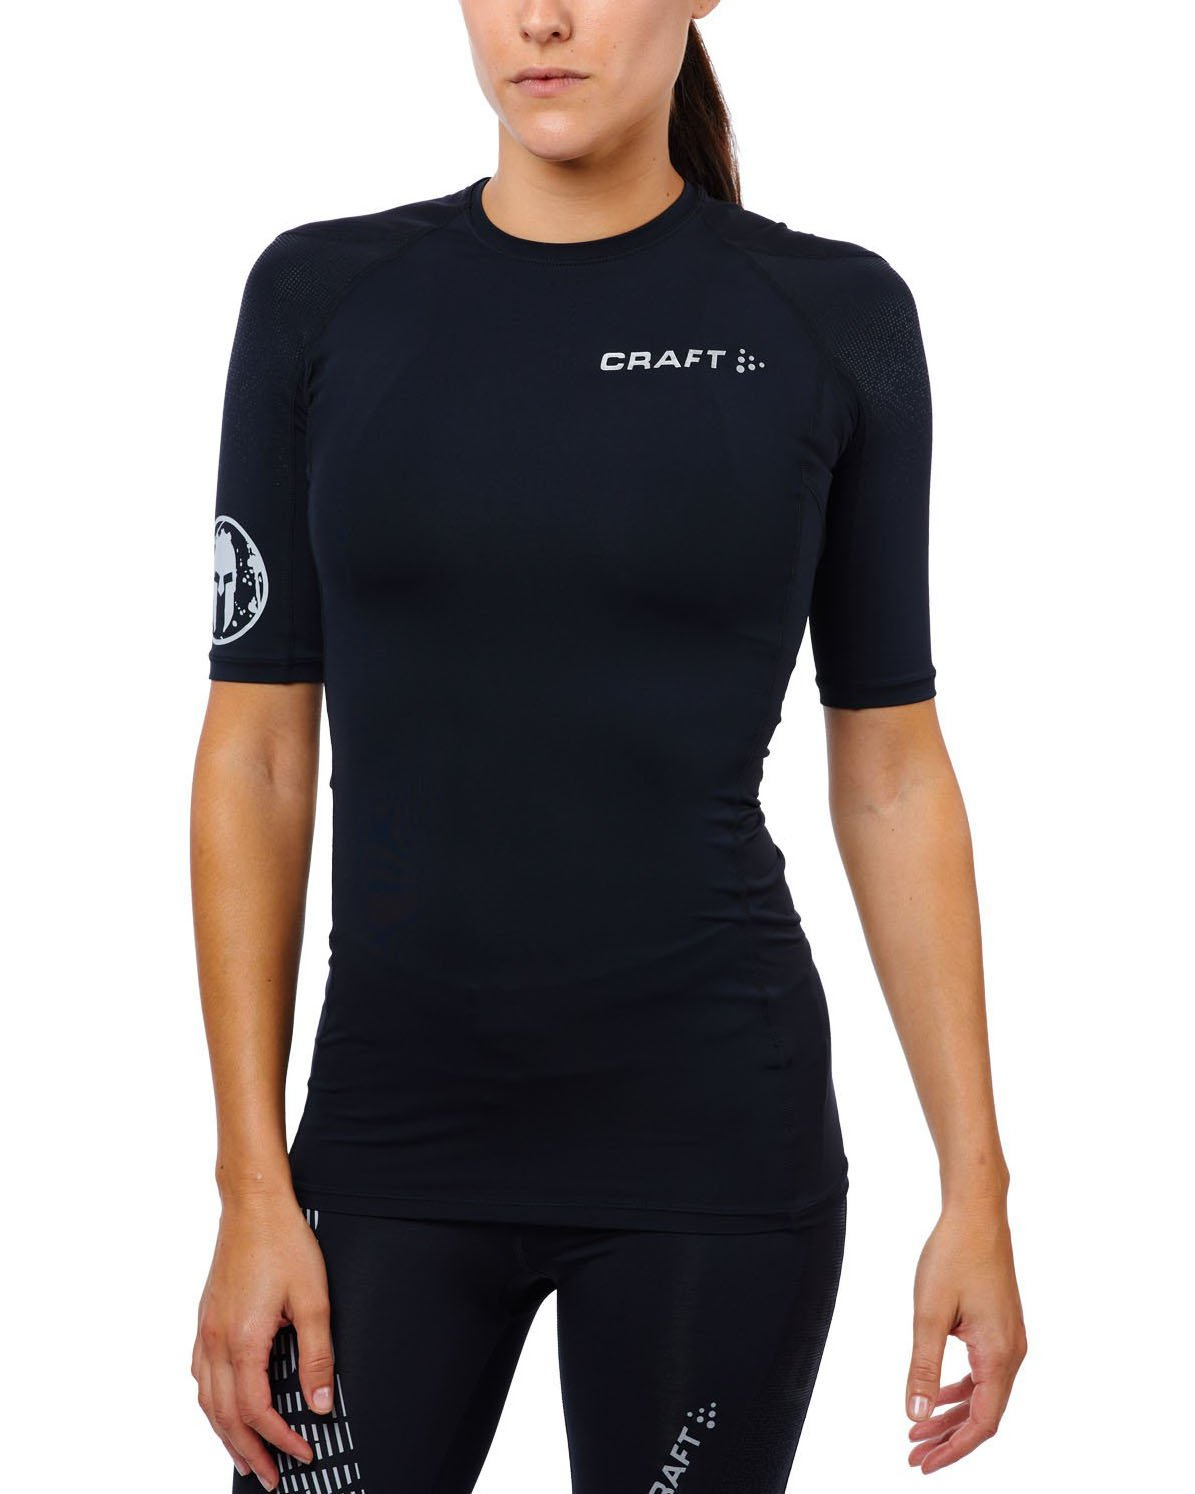 CRAFT SPARTAN By CRAFT Delta SS Compression Top - Women's Black XS